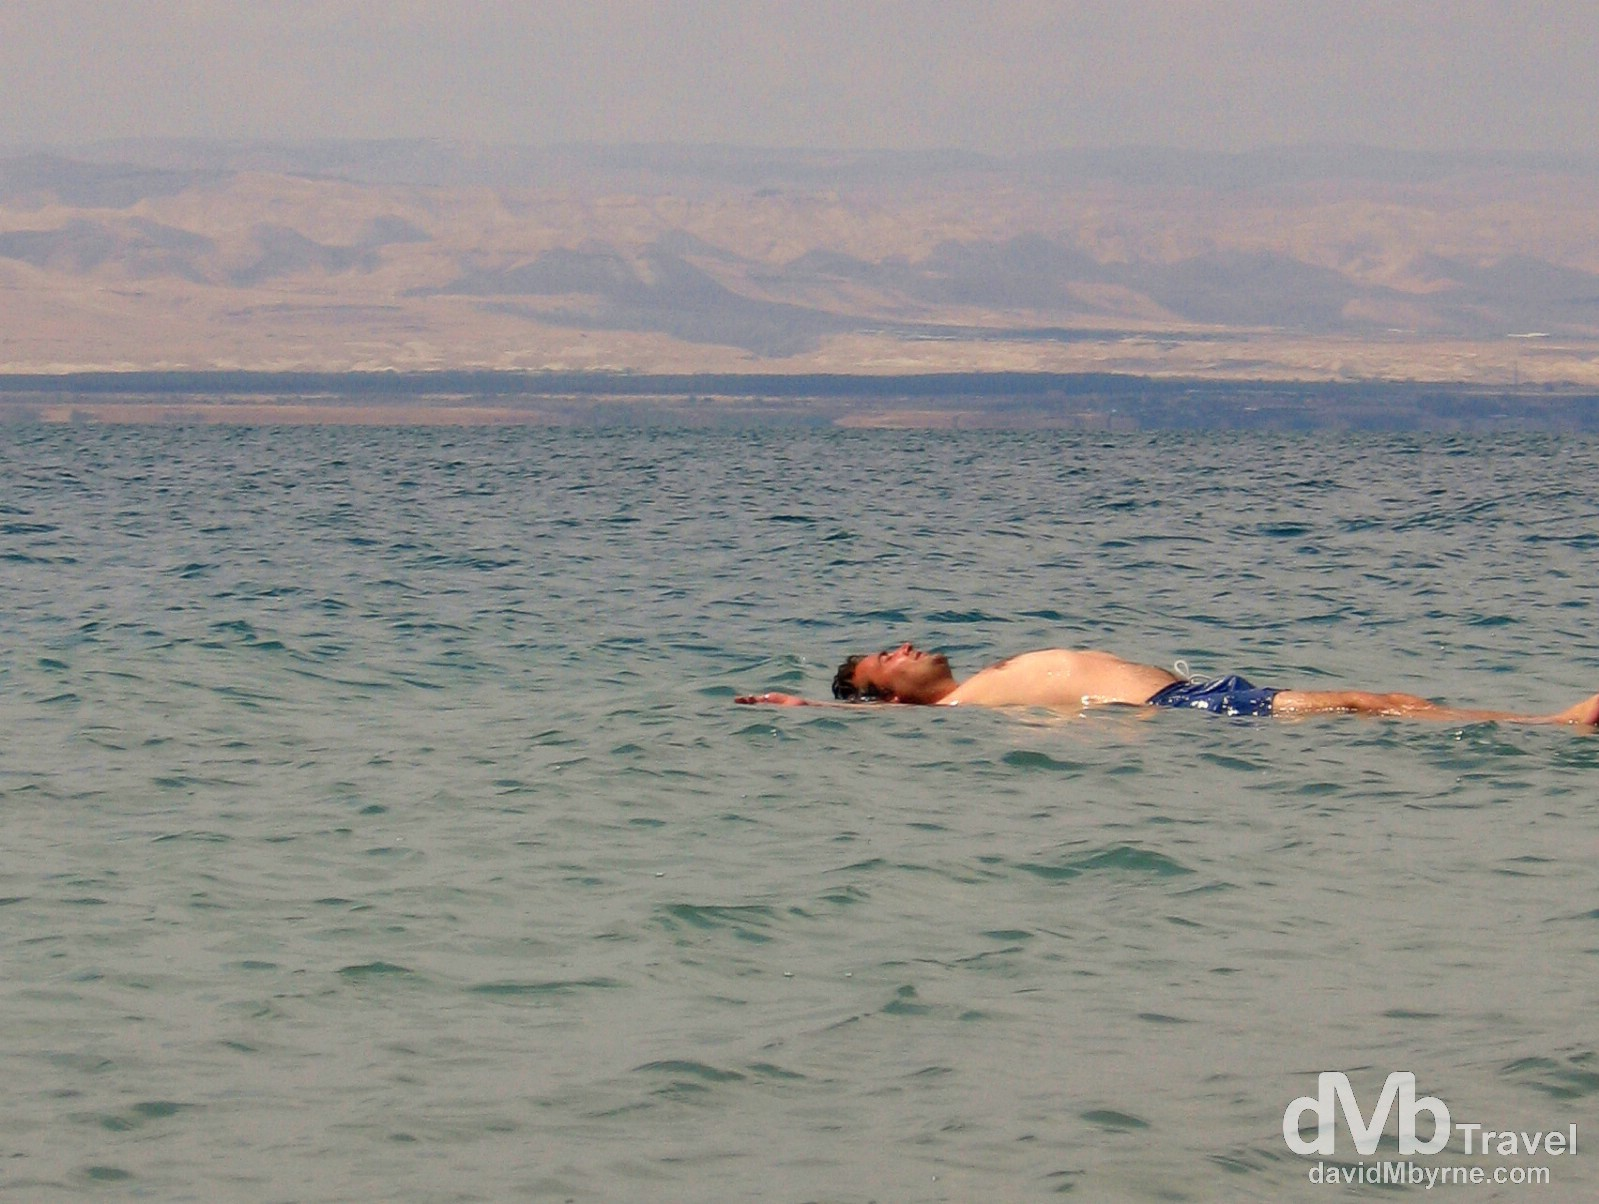 Floating in the Dead Sea in Jordan. April 29, 2008.